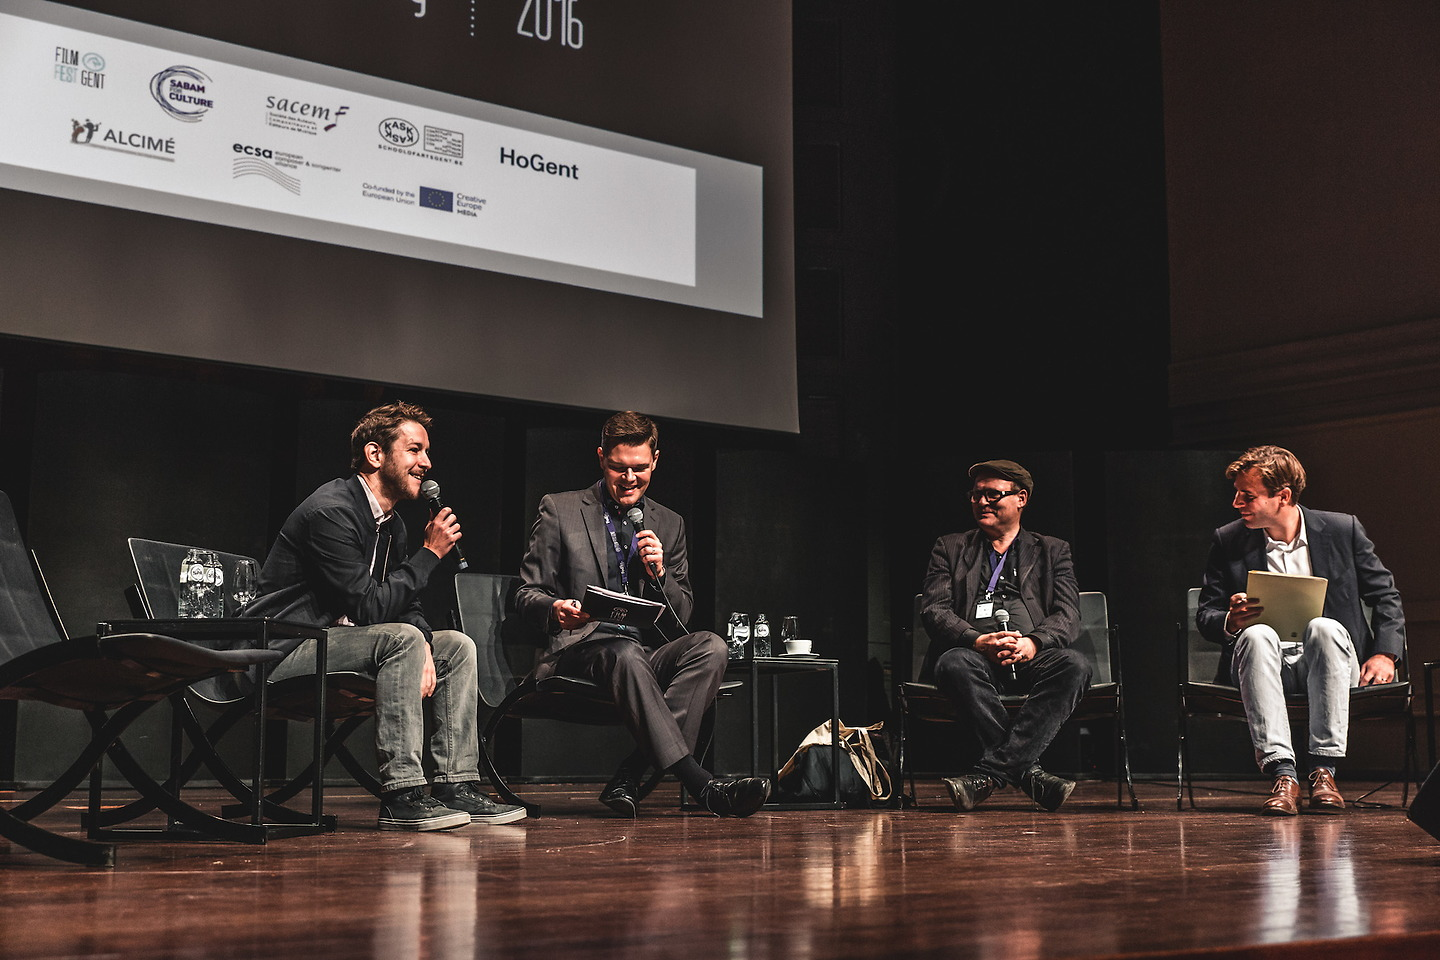 Film Fest Gent - WSA Industry Day